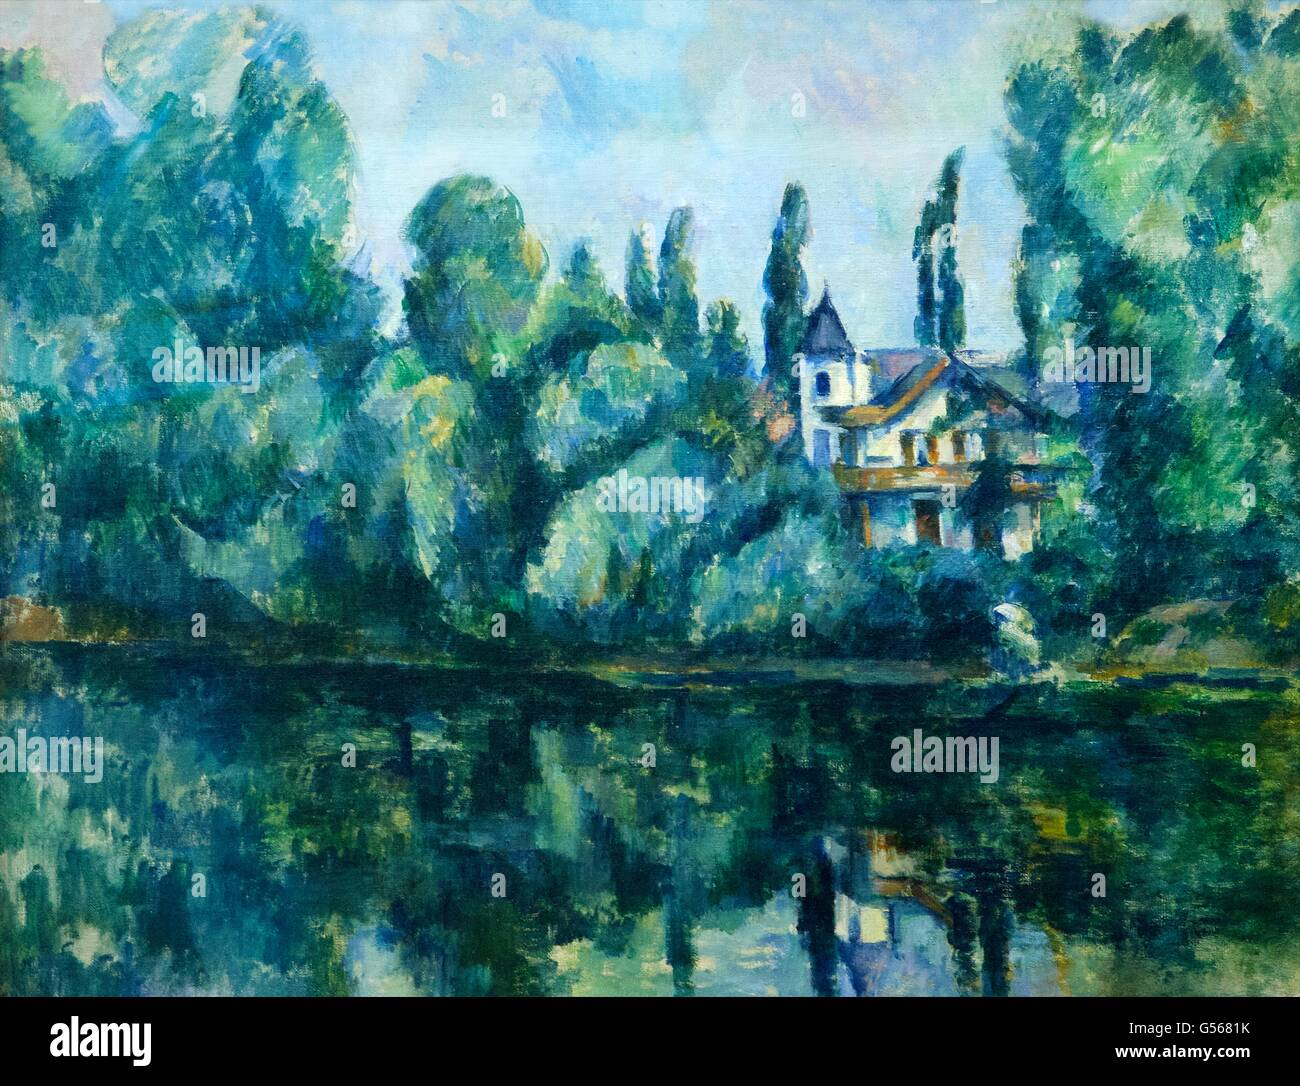 Banks of the Marne, by Paul Cezanne, 1888, State Hermitage Museum, Saint Petersburg, Russia - Stock Image